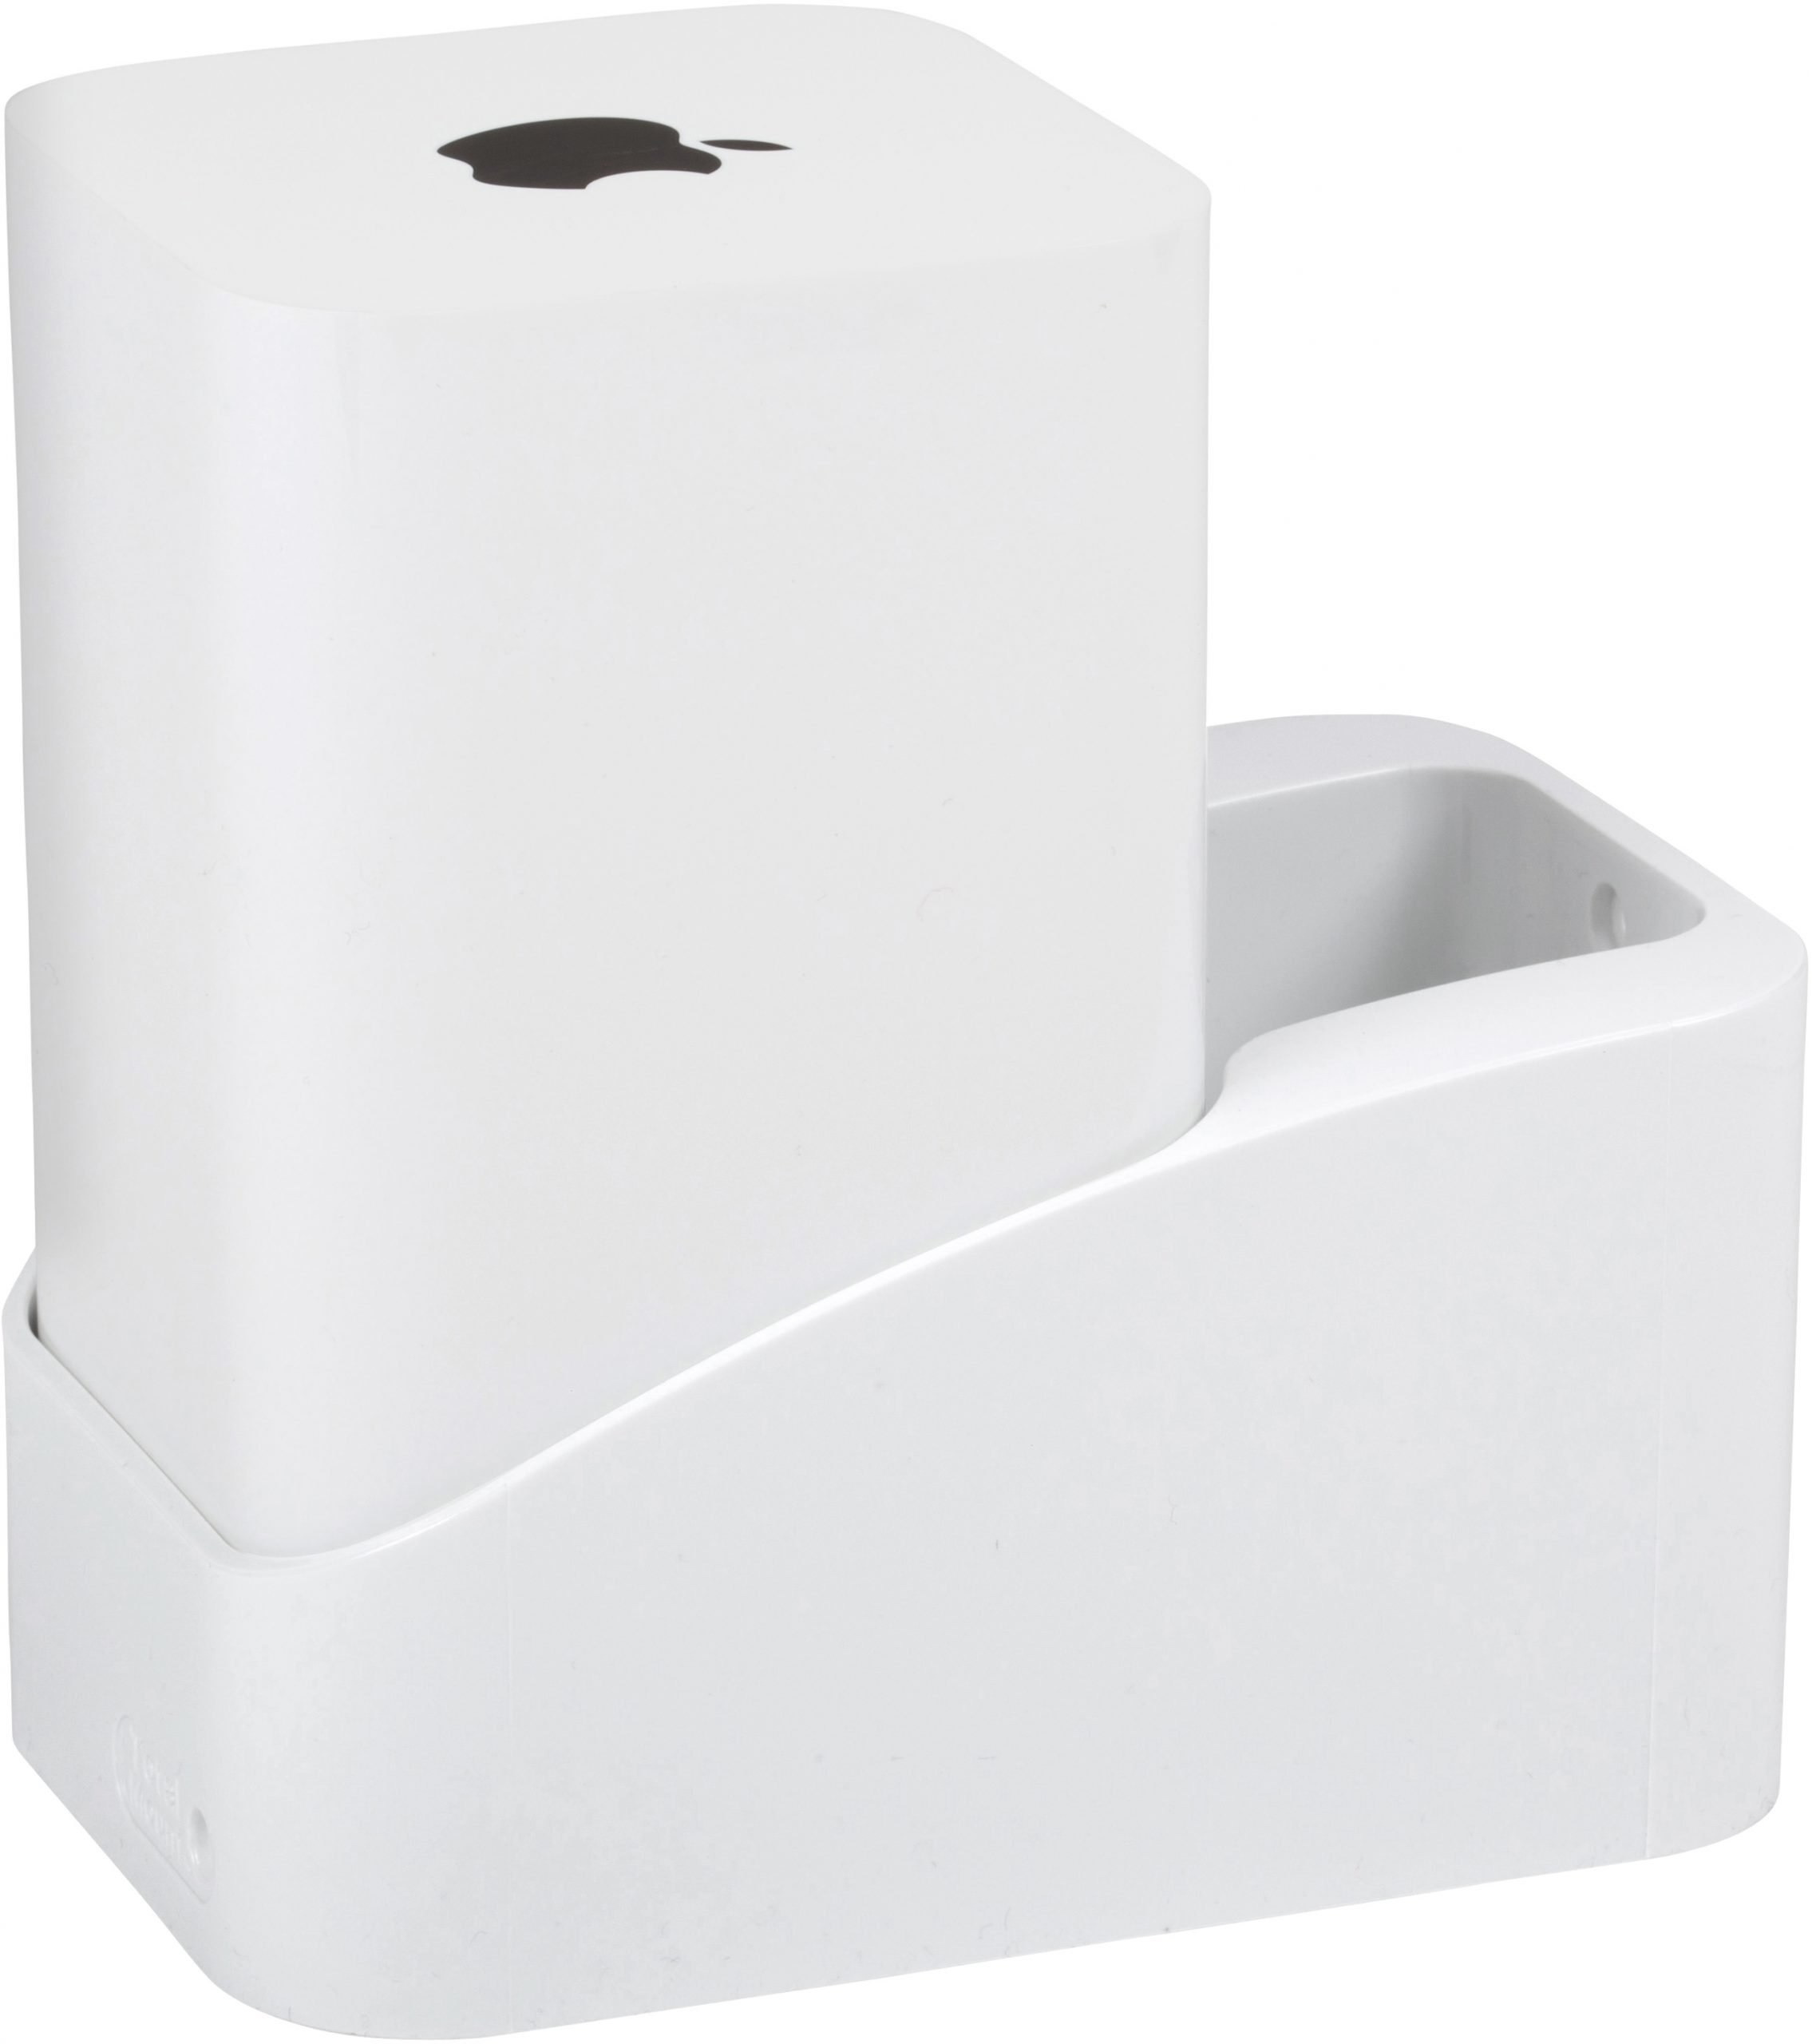 Innovelis – TotalMount Deluxe Airport Extreme/Time Capsule